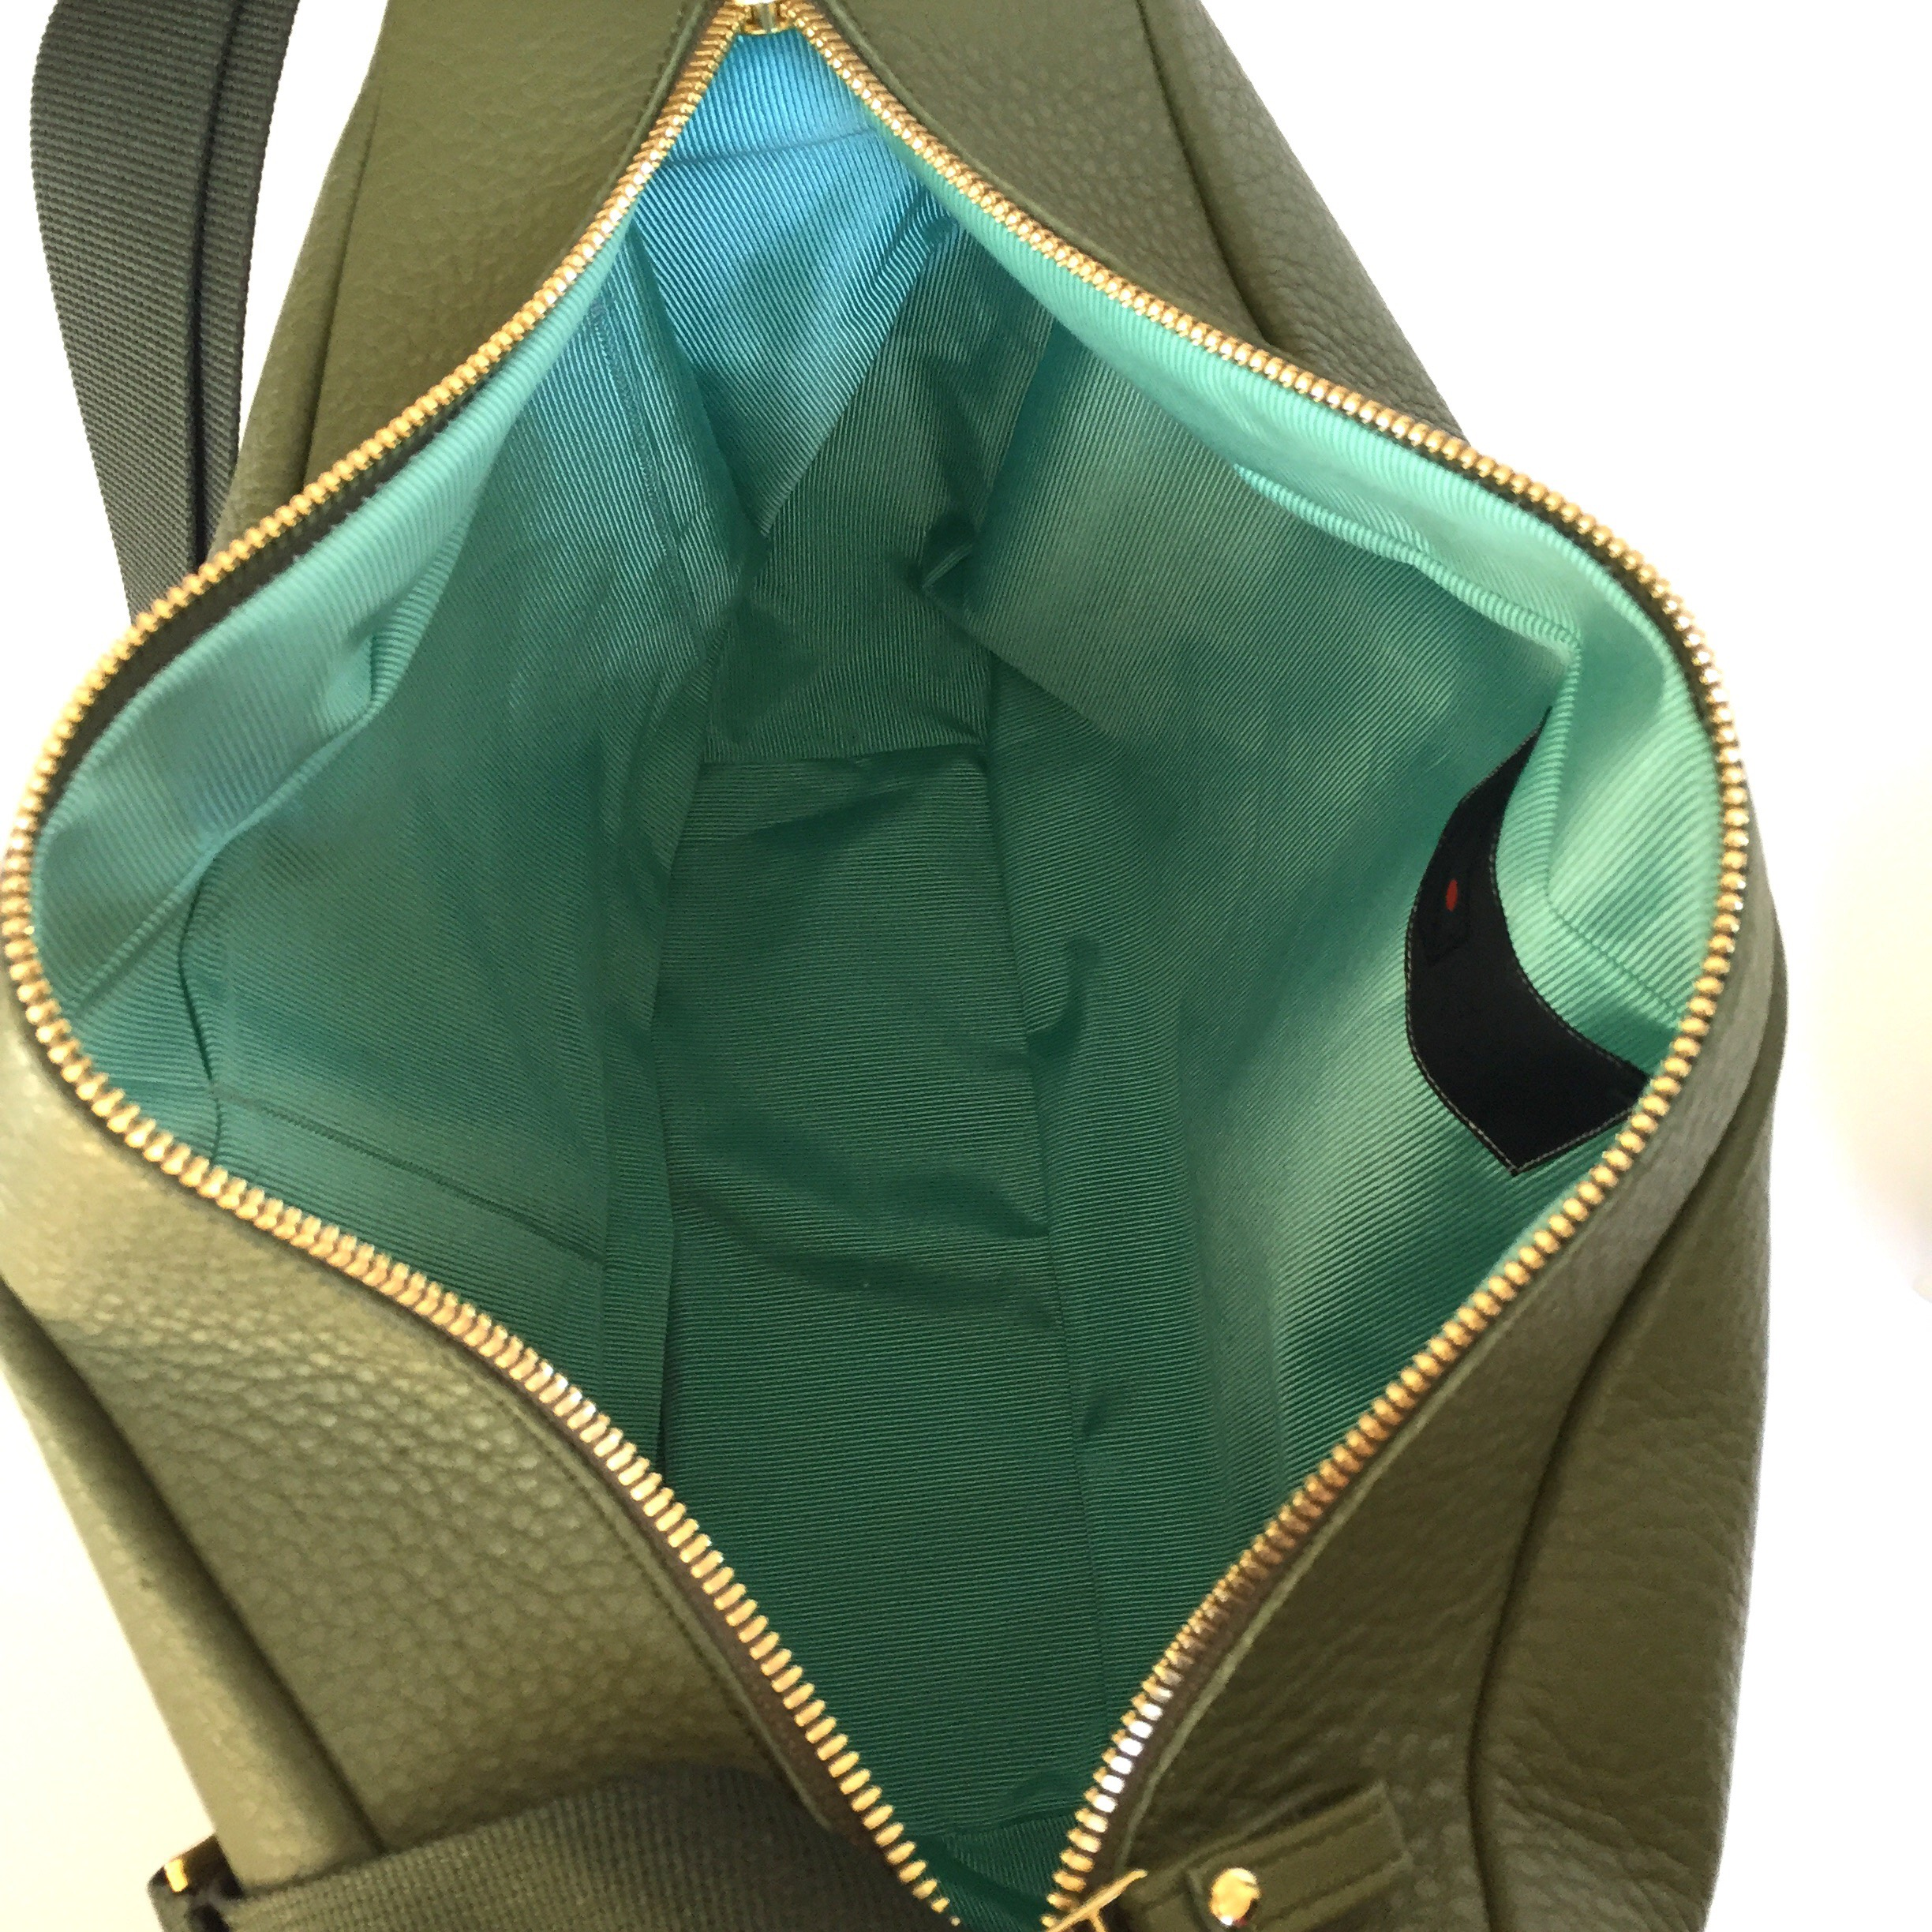 Processed with MOLDIV